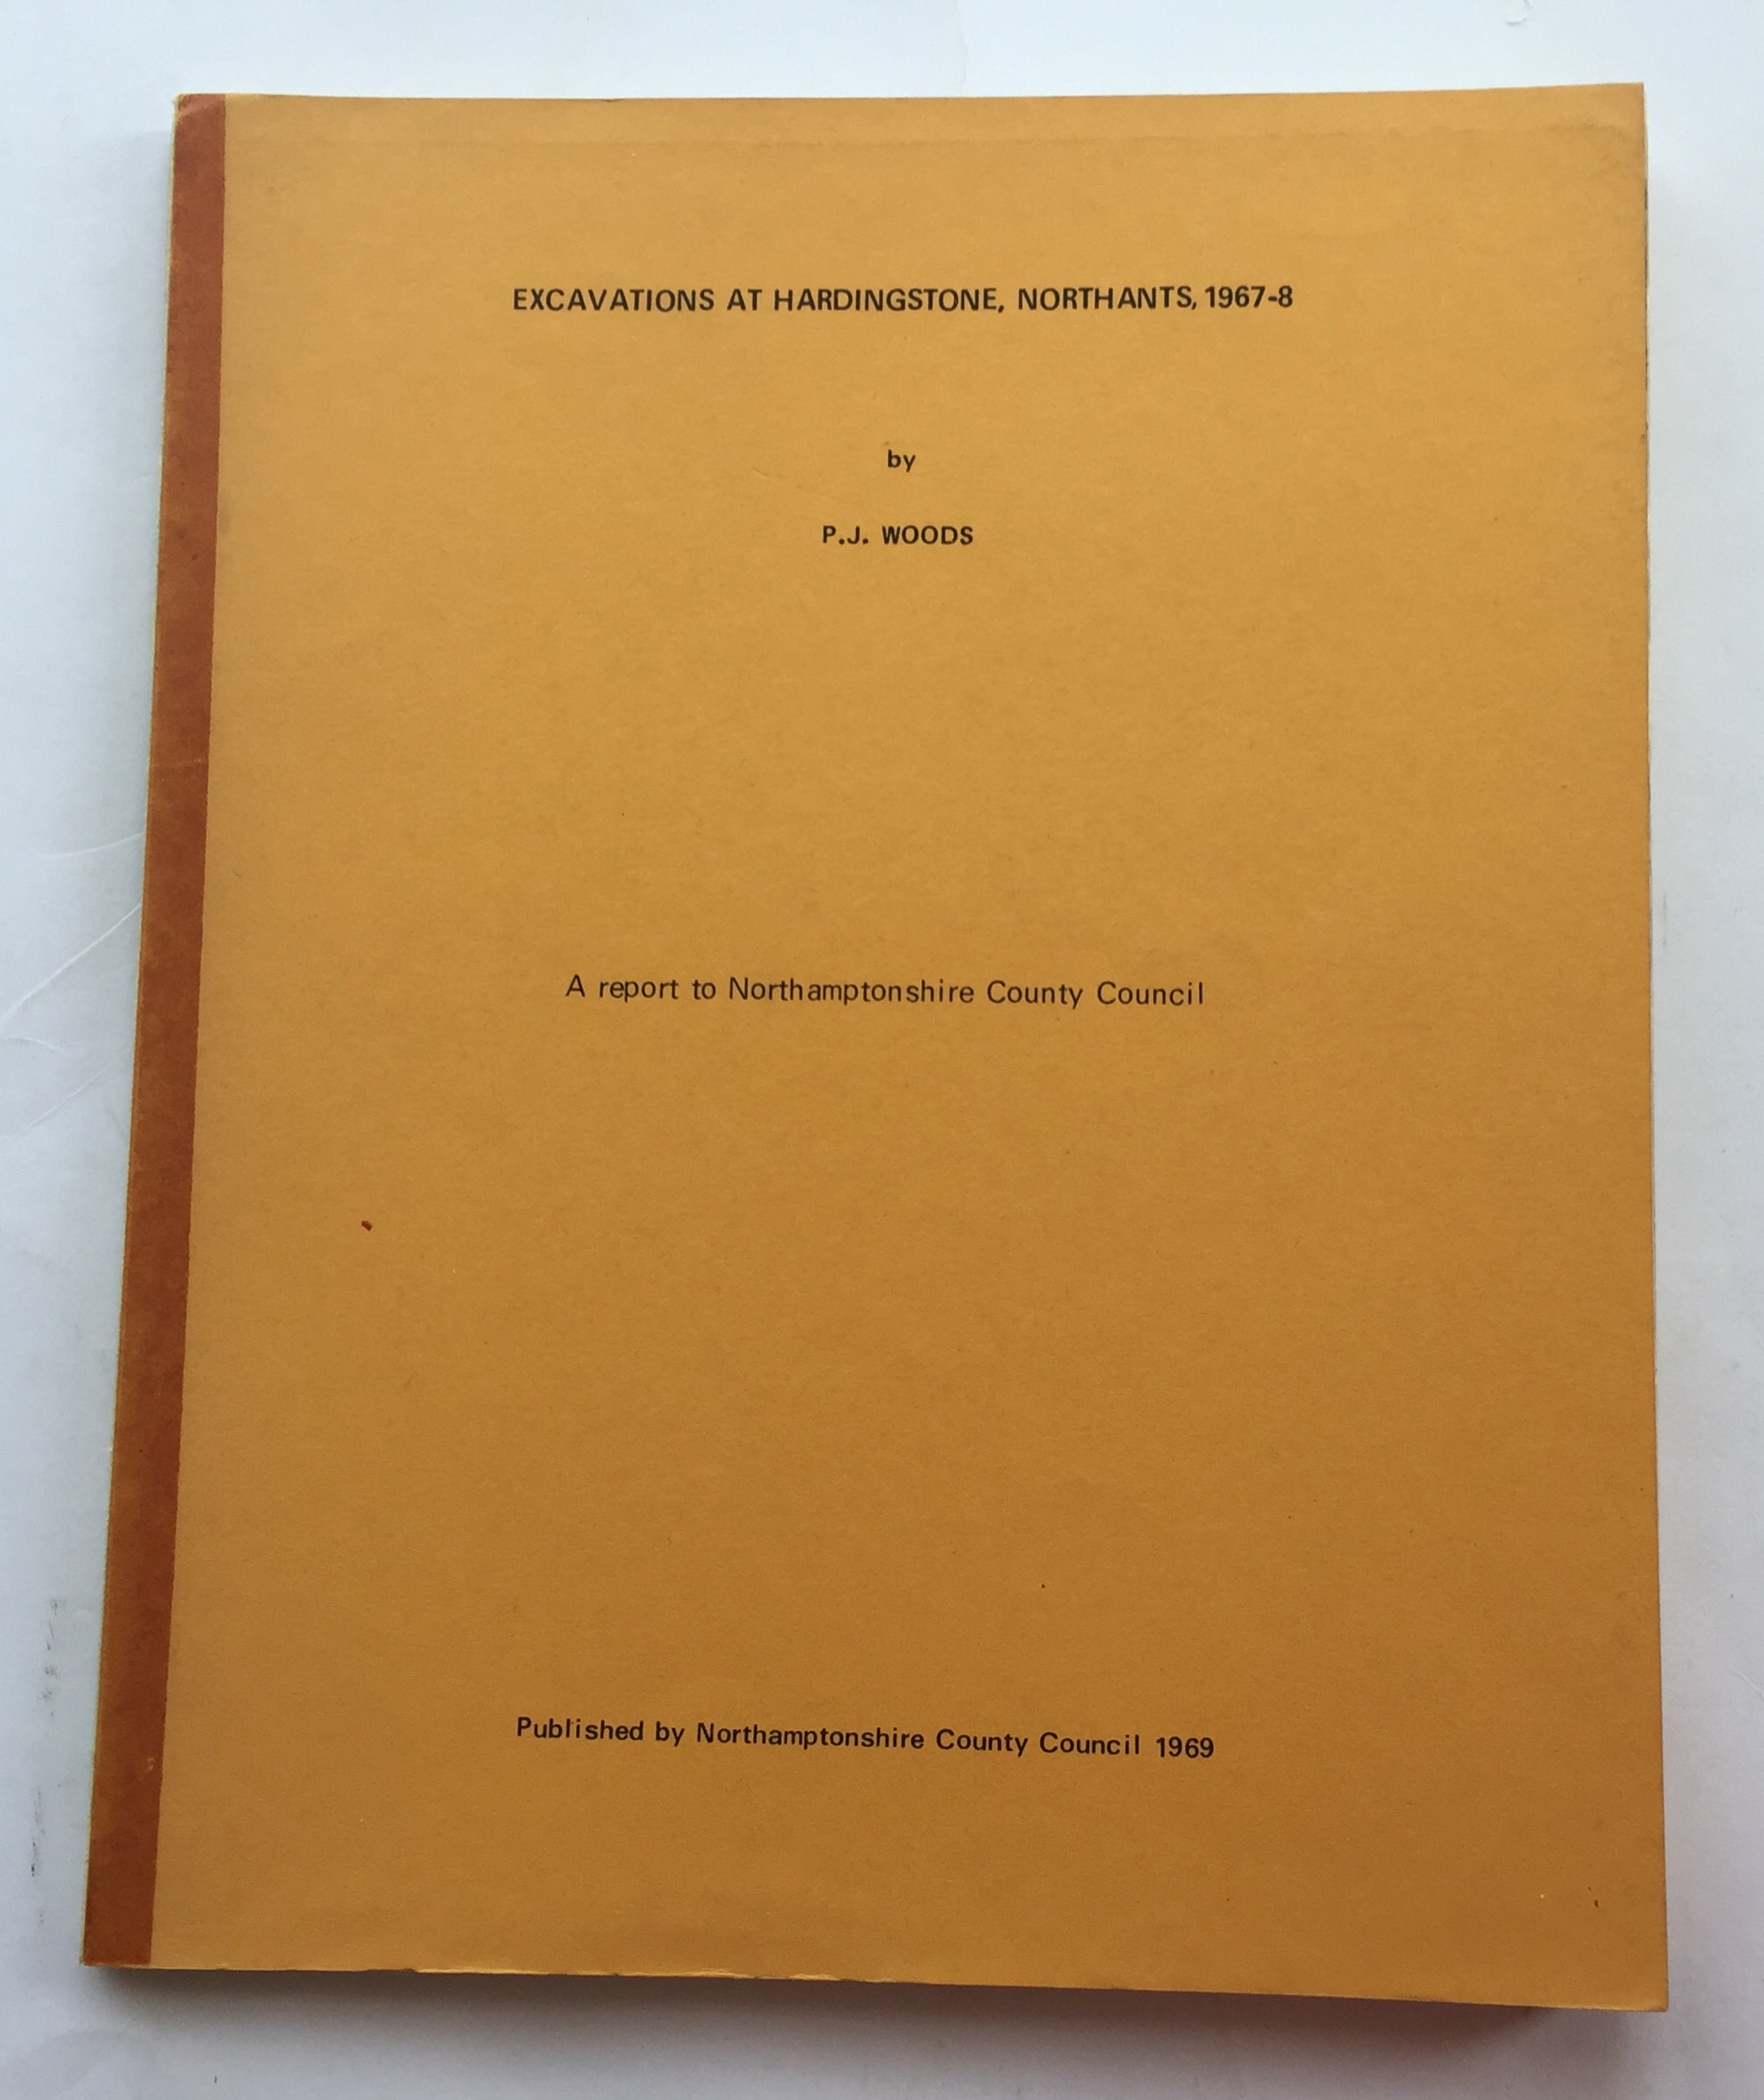 Image for Excavations at Hardingstone, Northants, 1967-8 :A report to Northamptonshire County Council